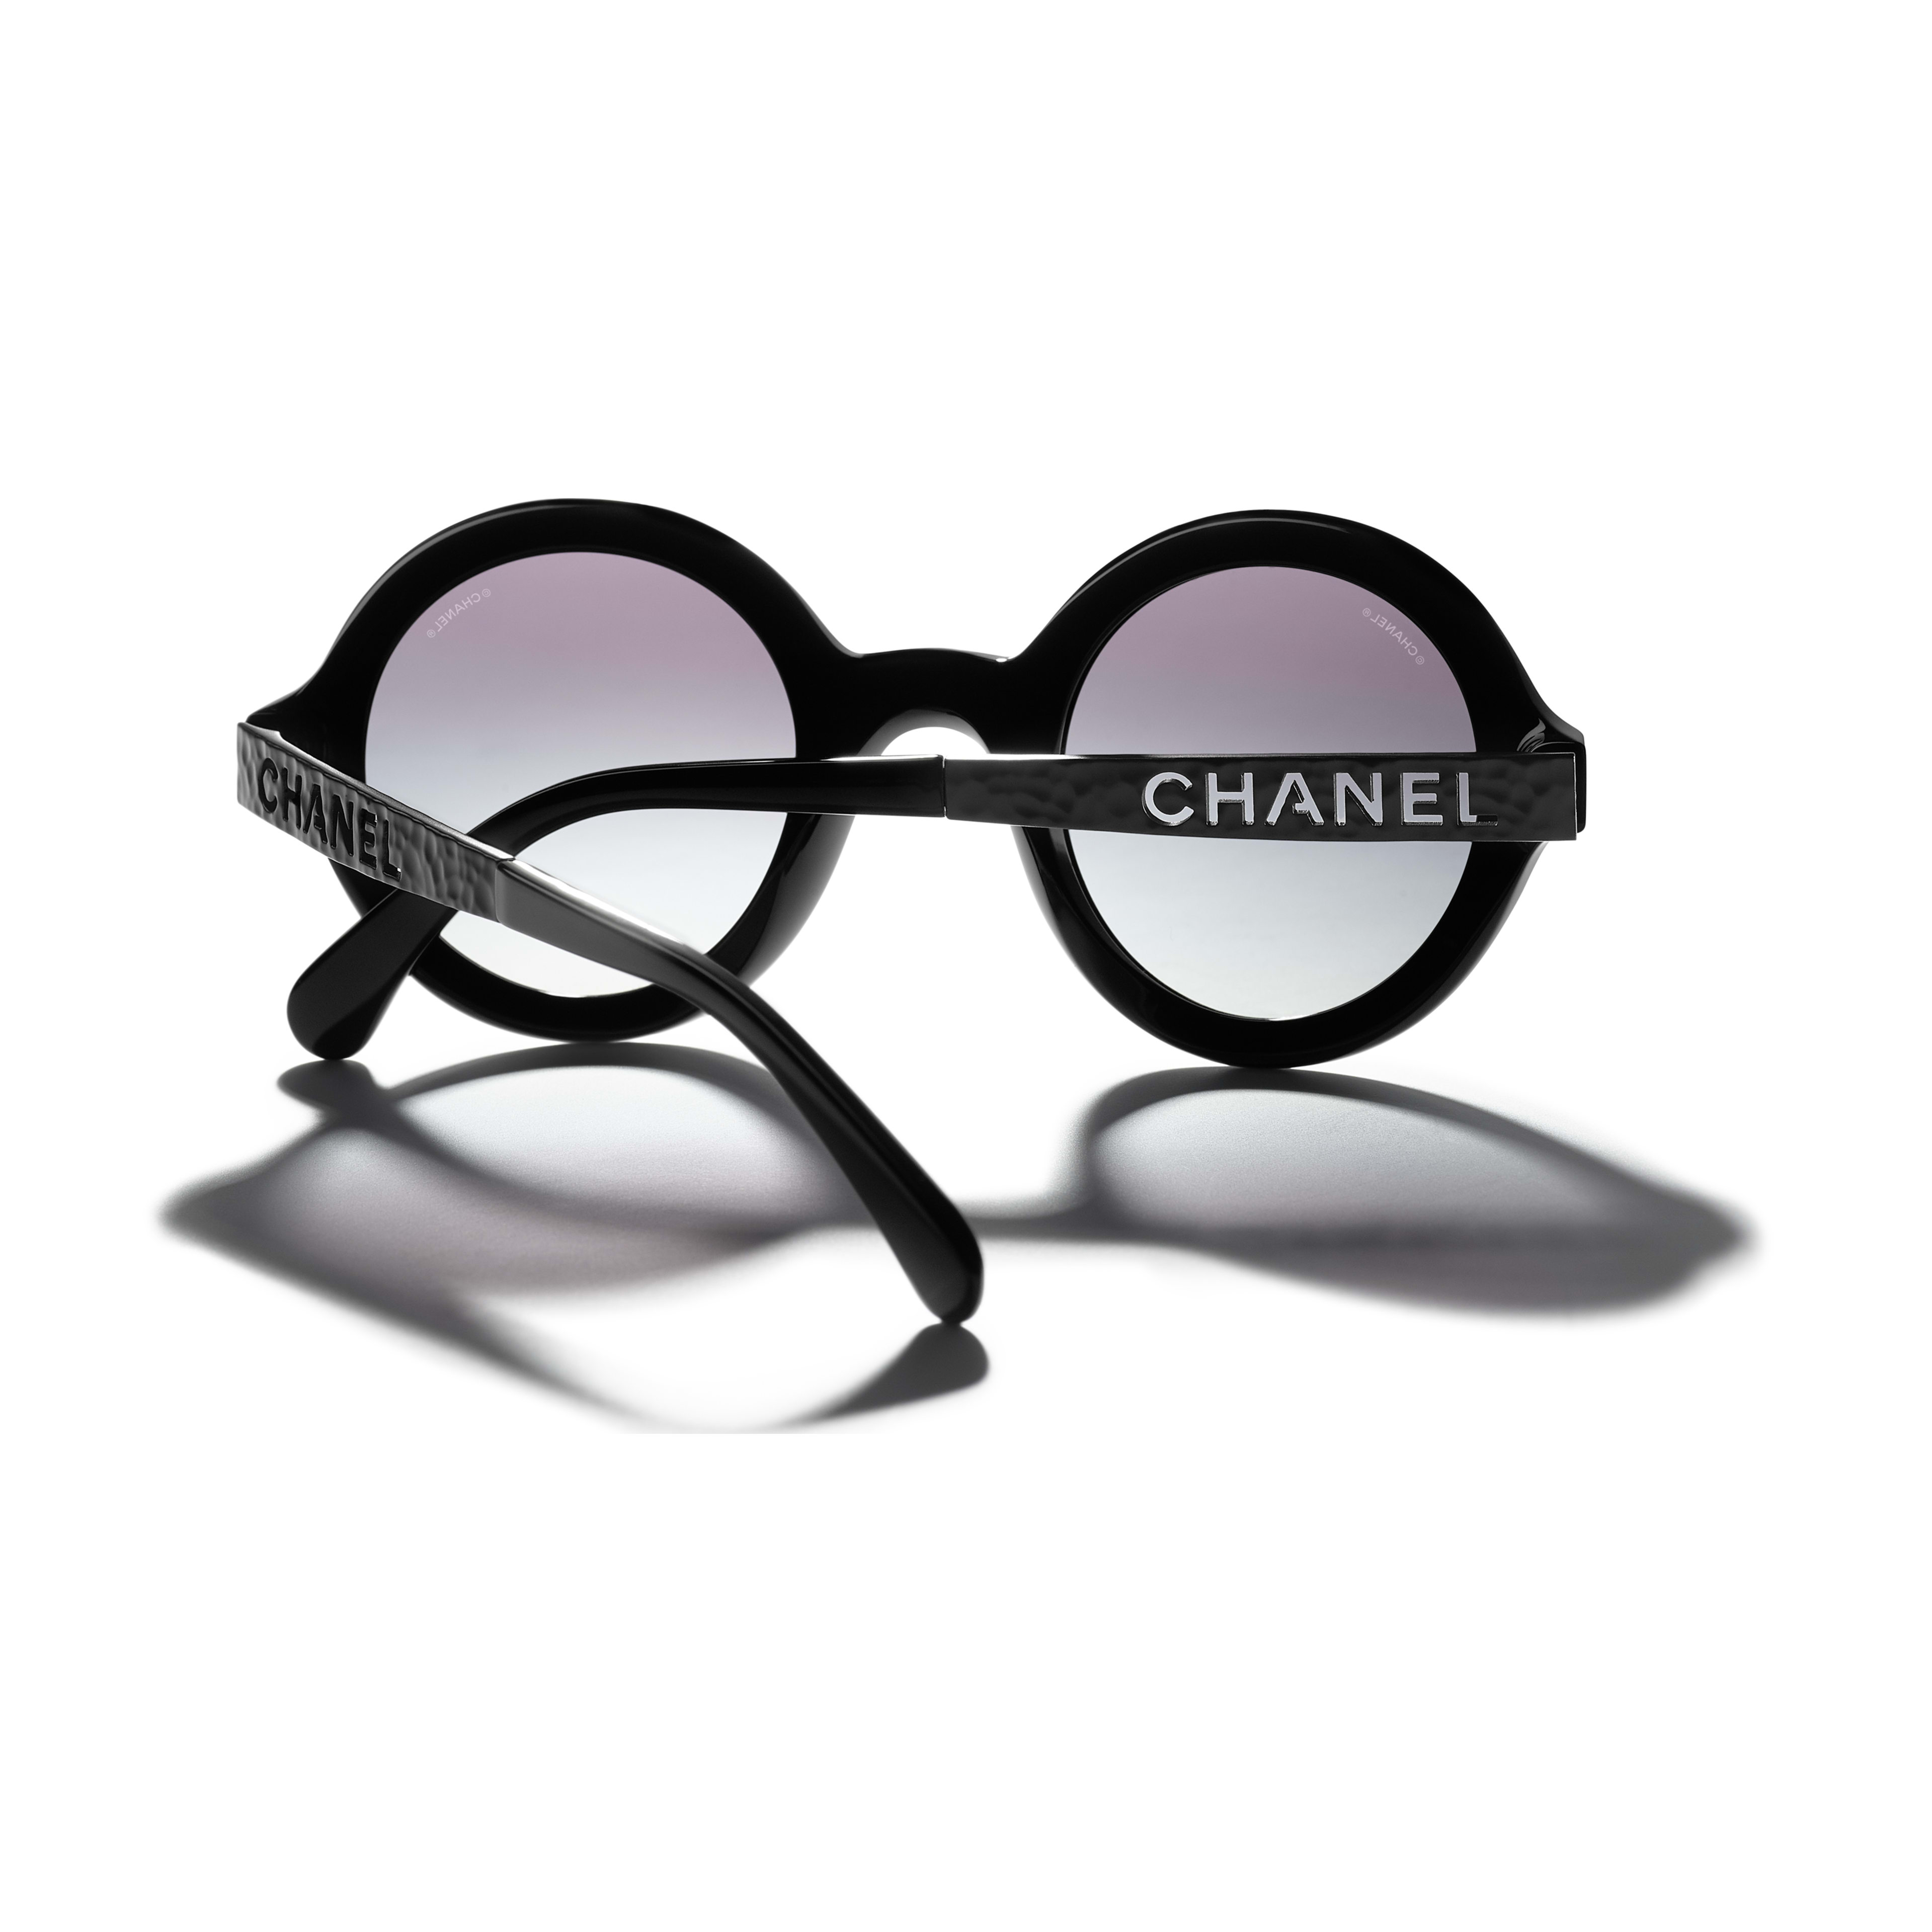 Round Sunglasses - Black - Acetate & Metal - CHANEL - Extra view - see standard sized version